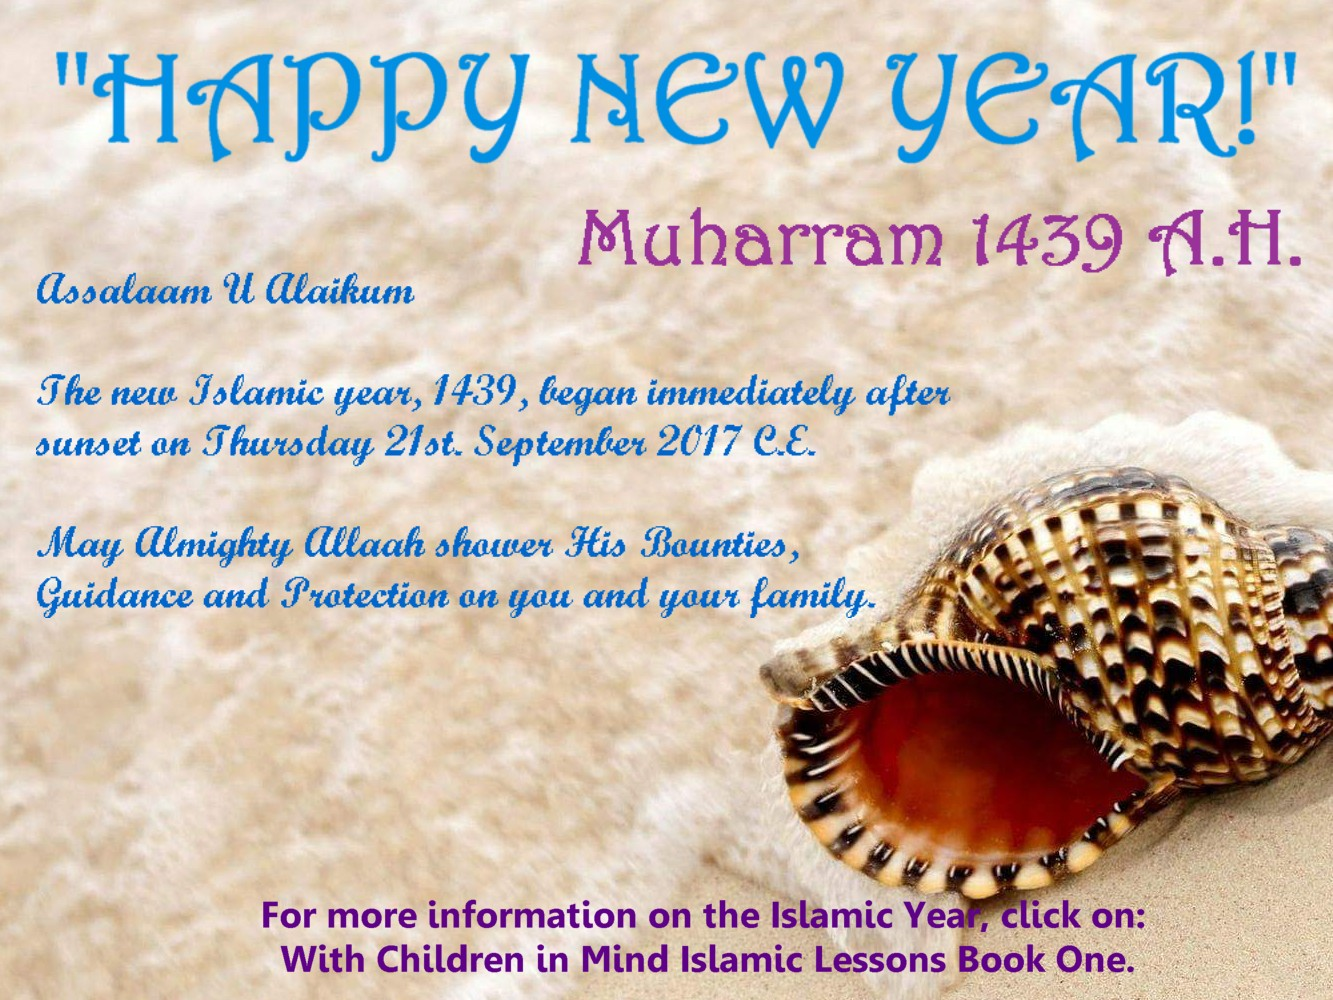 Click here for more information on The Islamic New Year